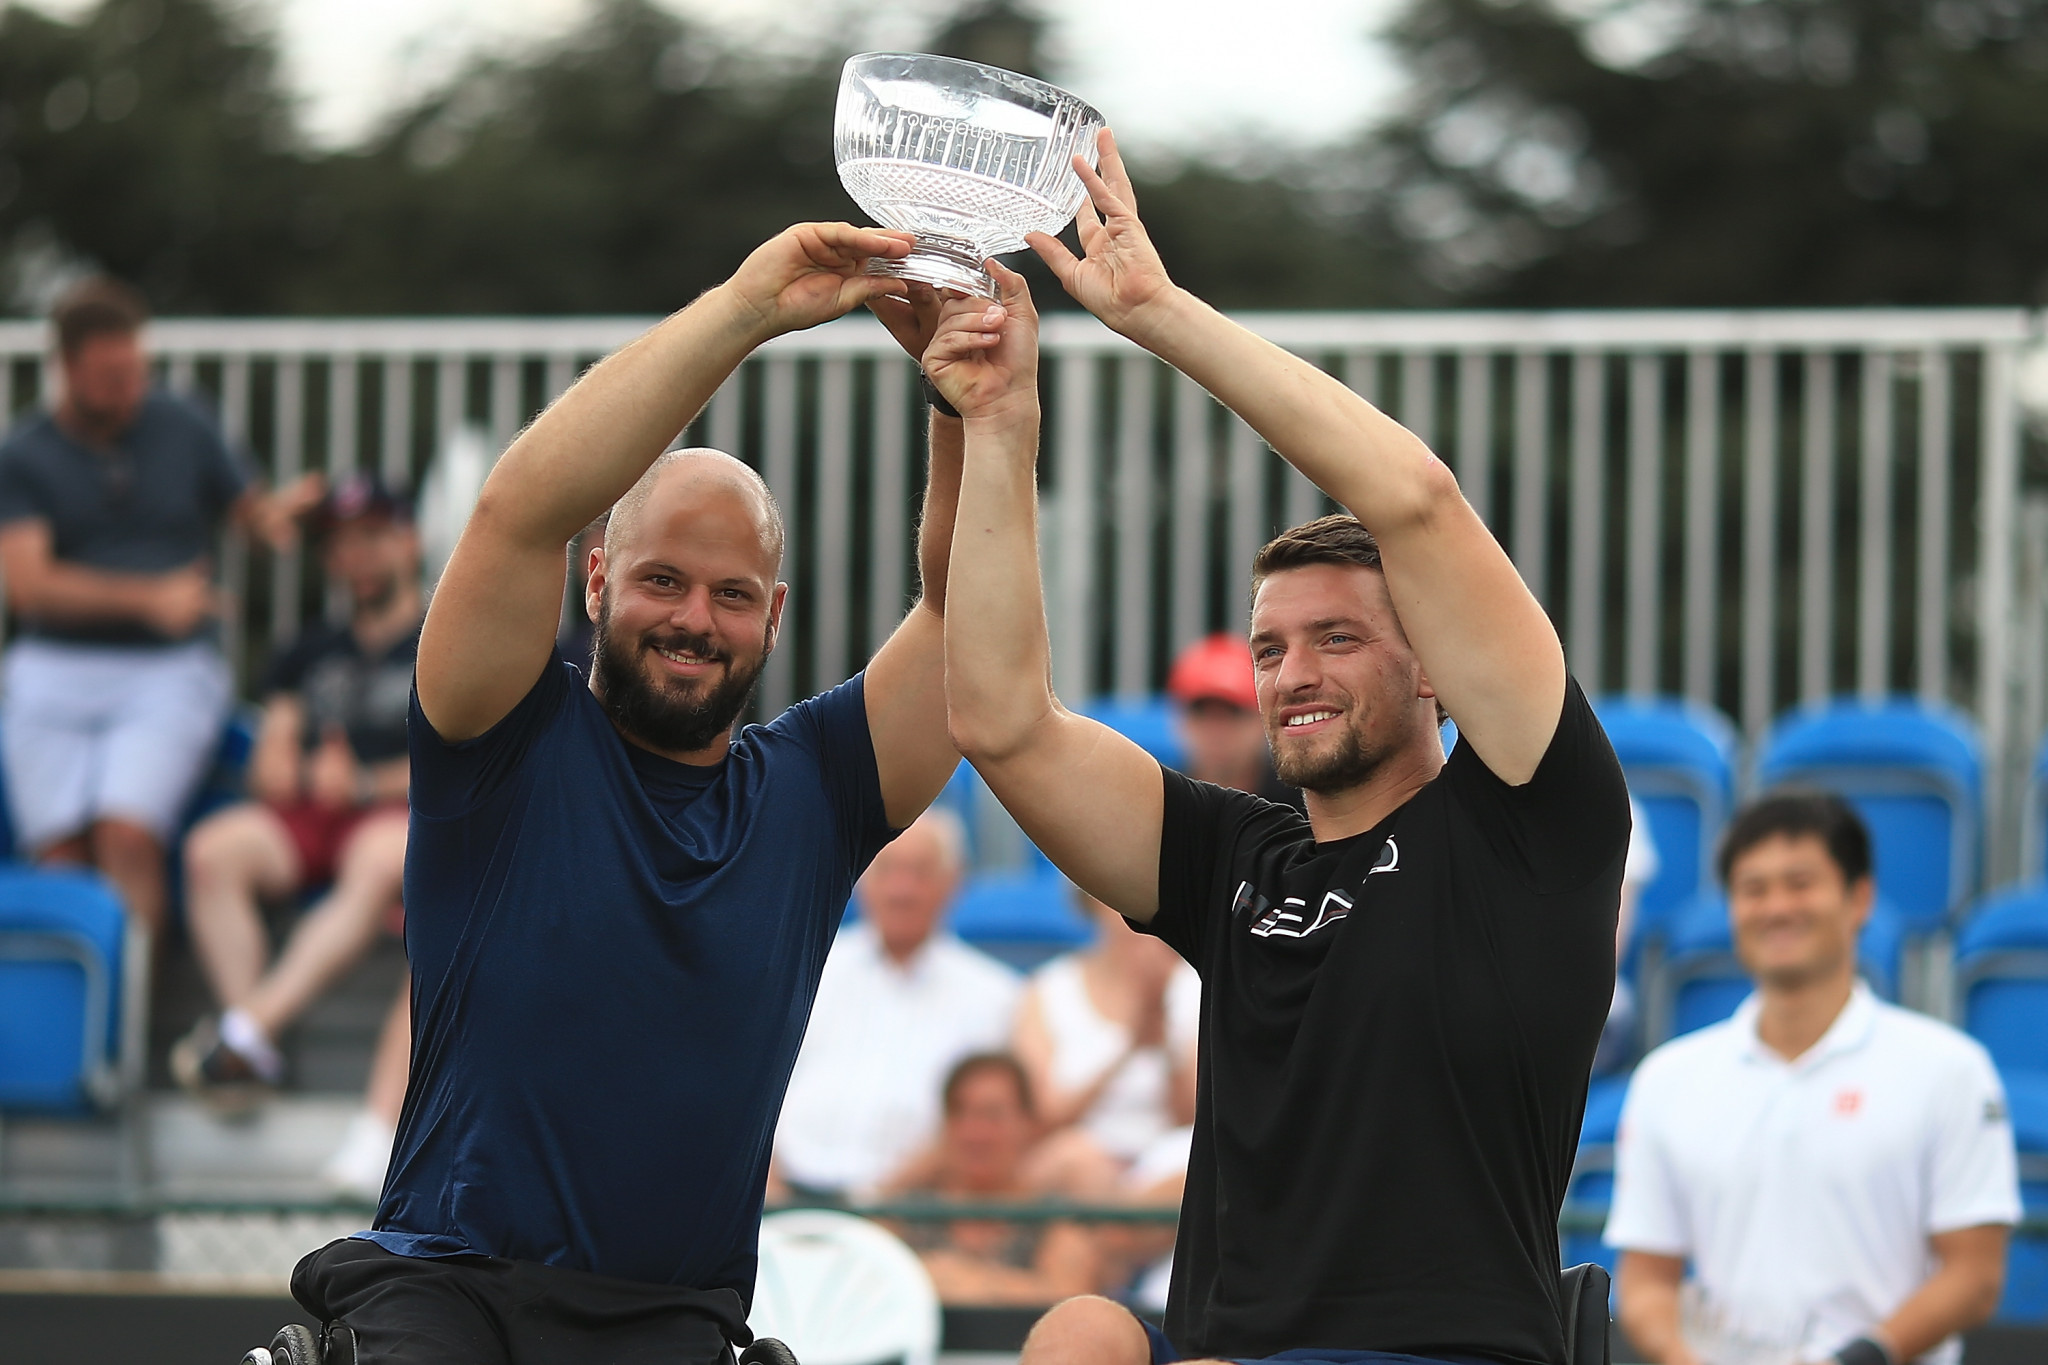 Wimbledon singles champion Stephan Olsson claims British Open Wheelchair Tennis doubles title